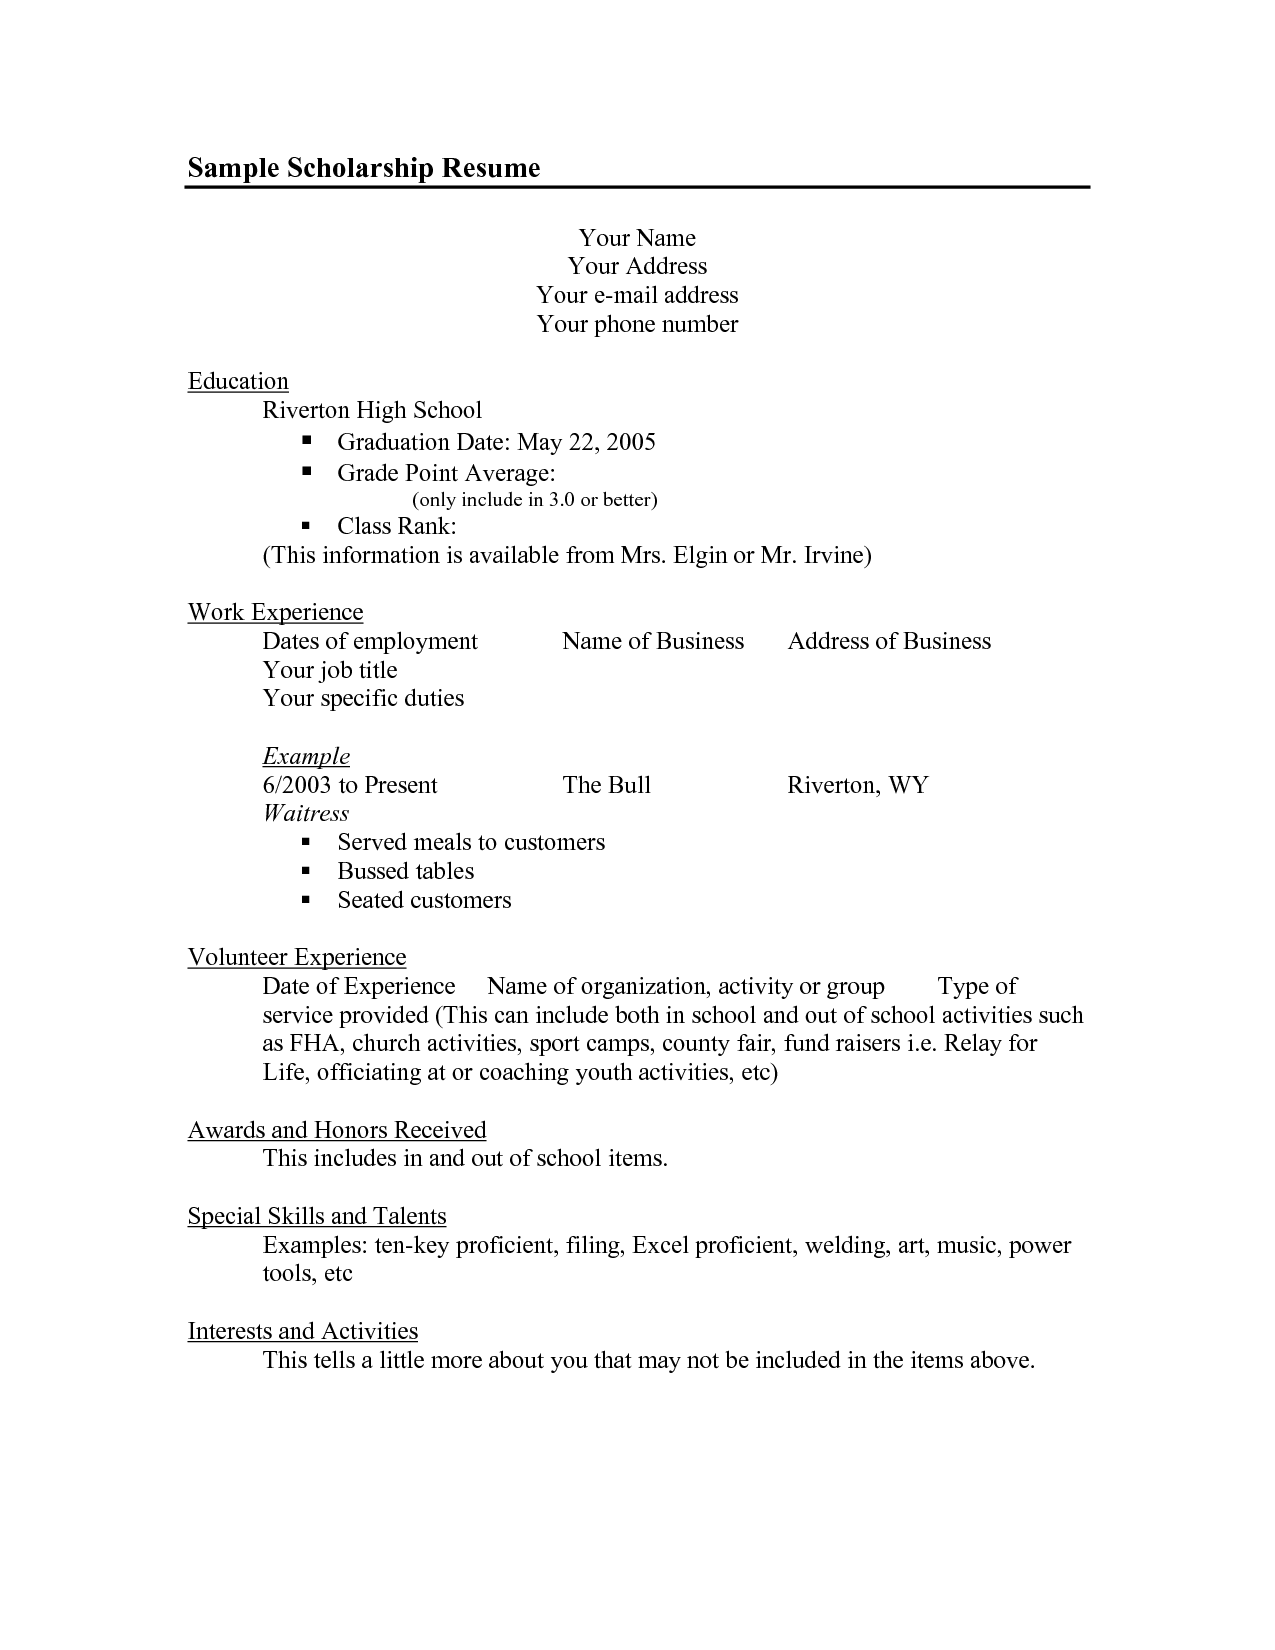 Apa Resume Template Scholarship Resume Templates  Sample Scholarship Resume